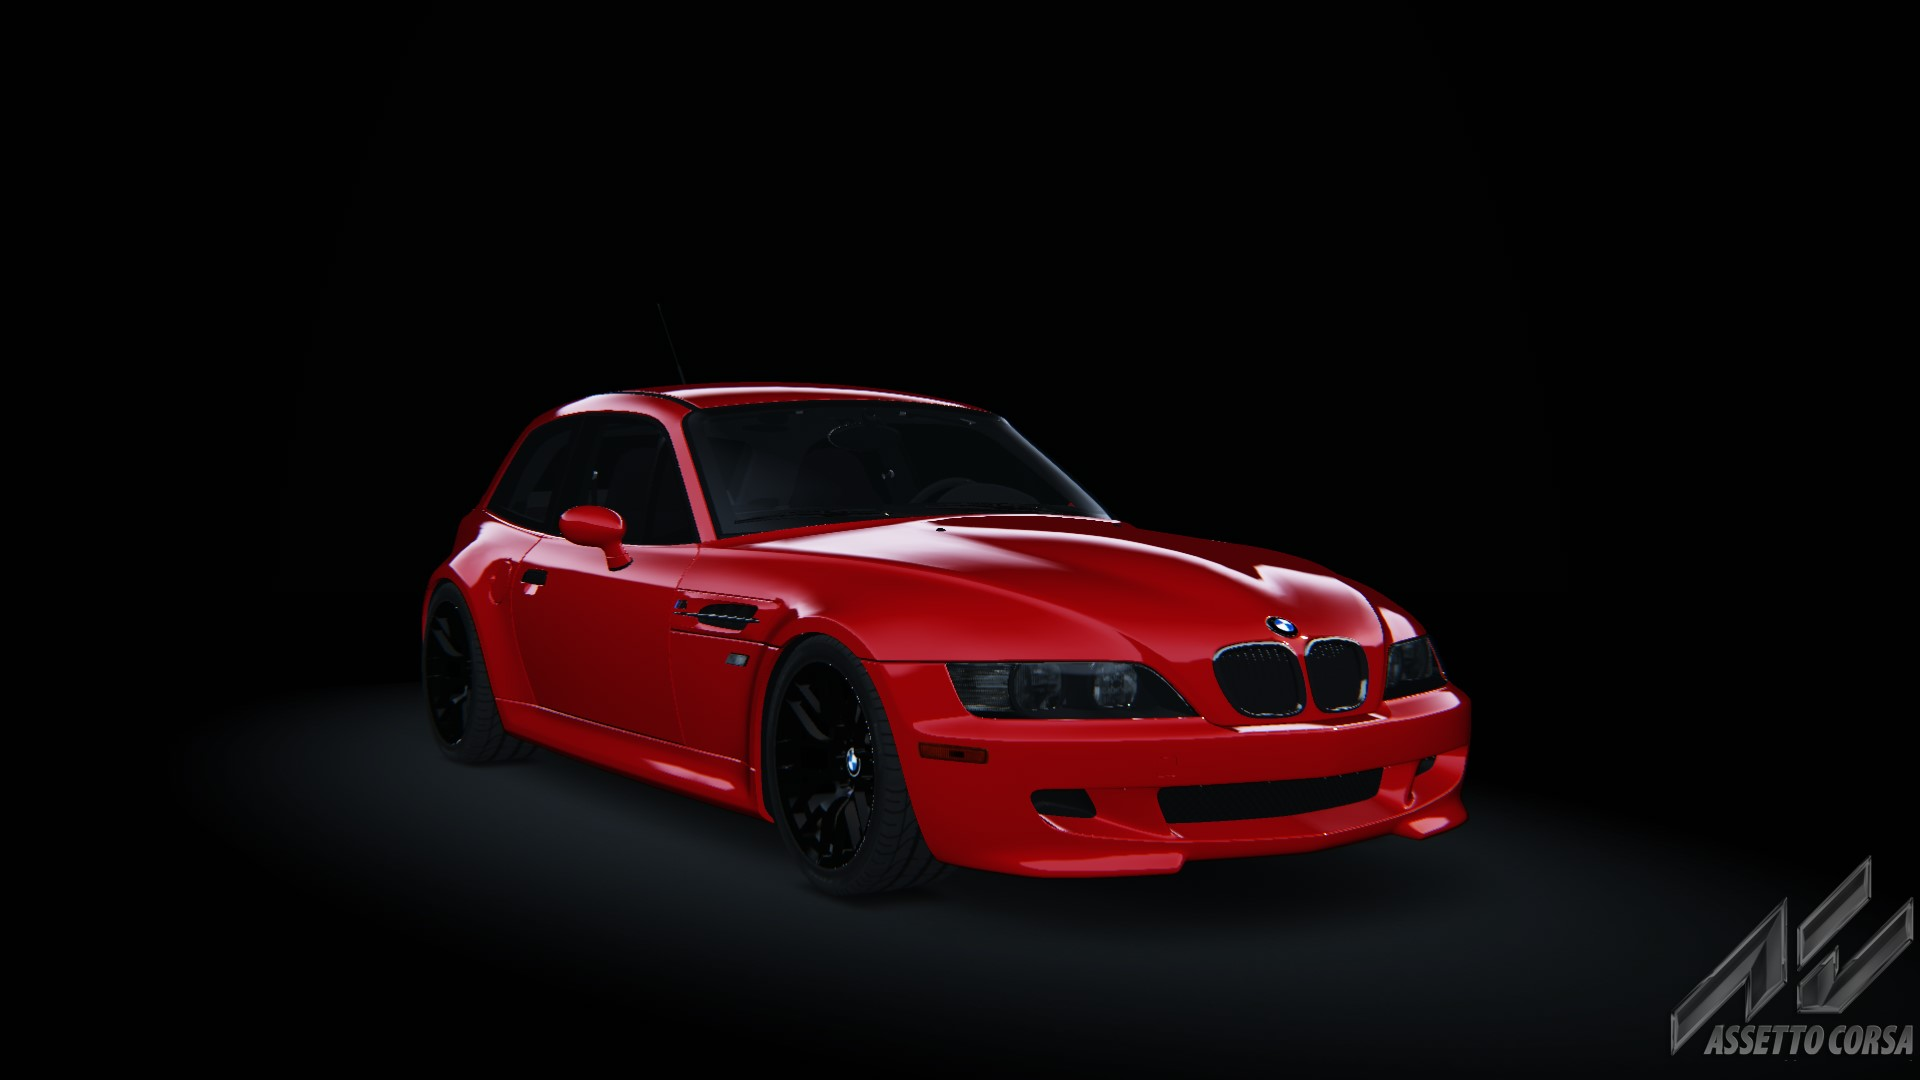 Bmw Z3 M Coupe S54 Bmw Car Detail Assetto Corsa Database